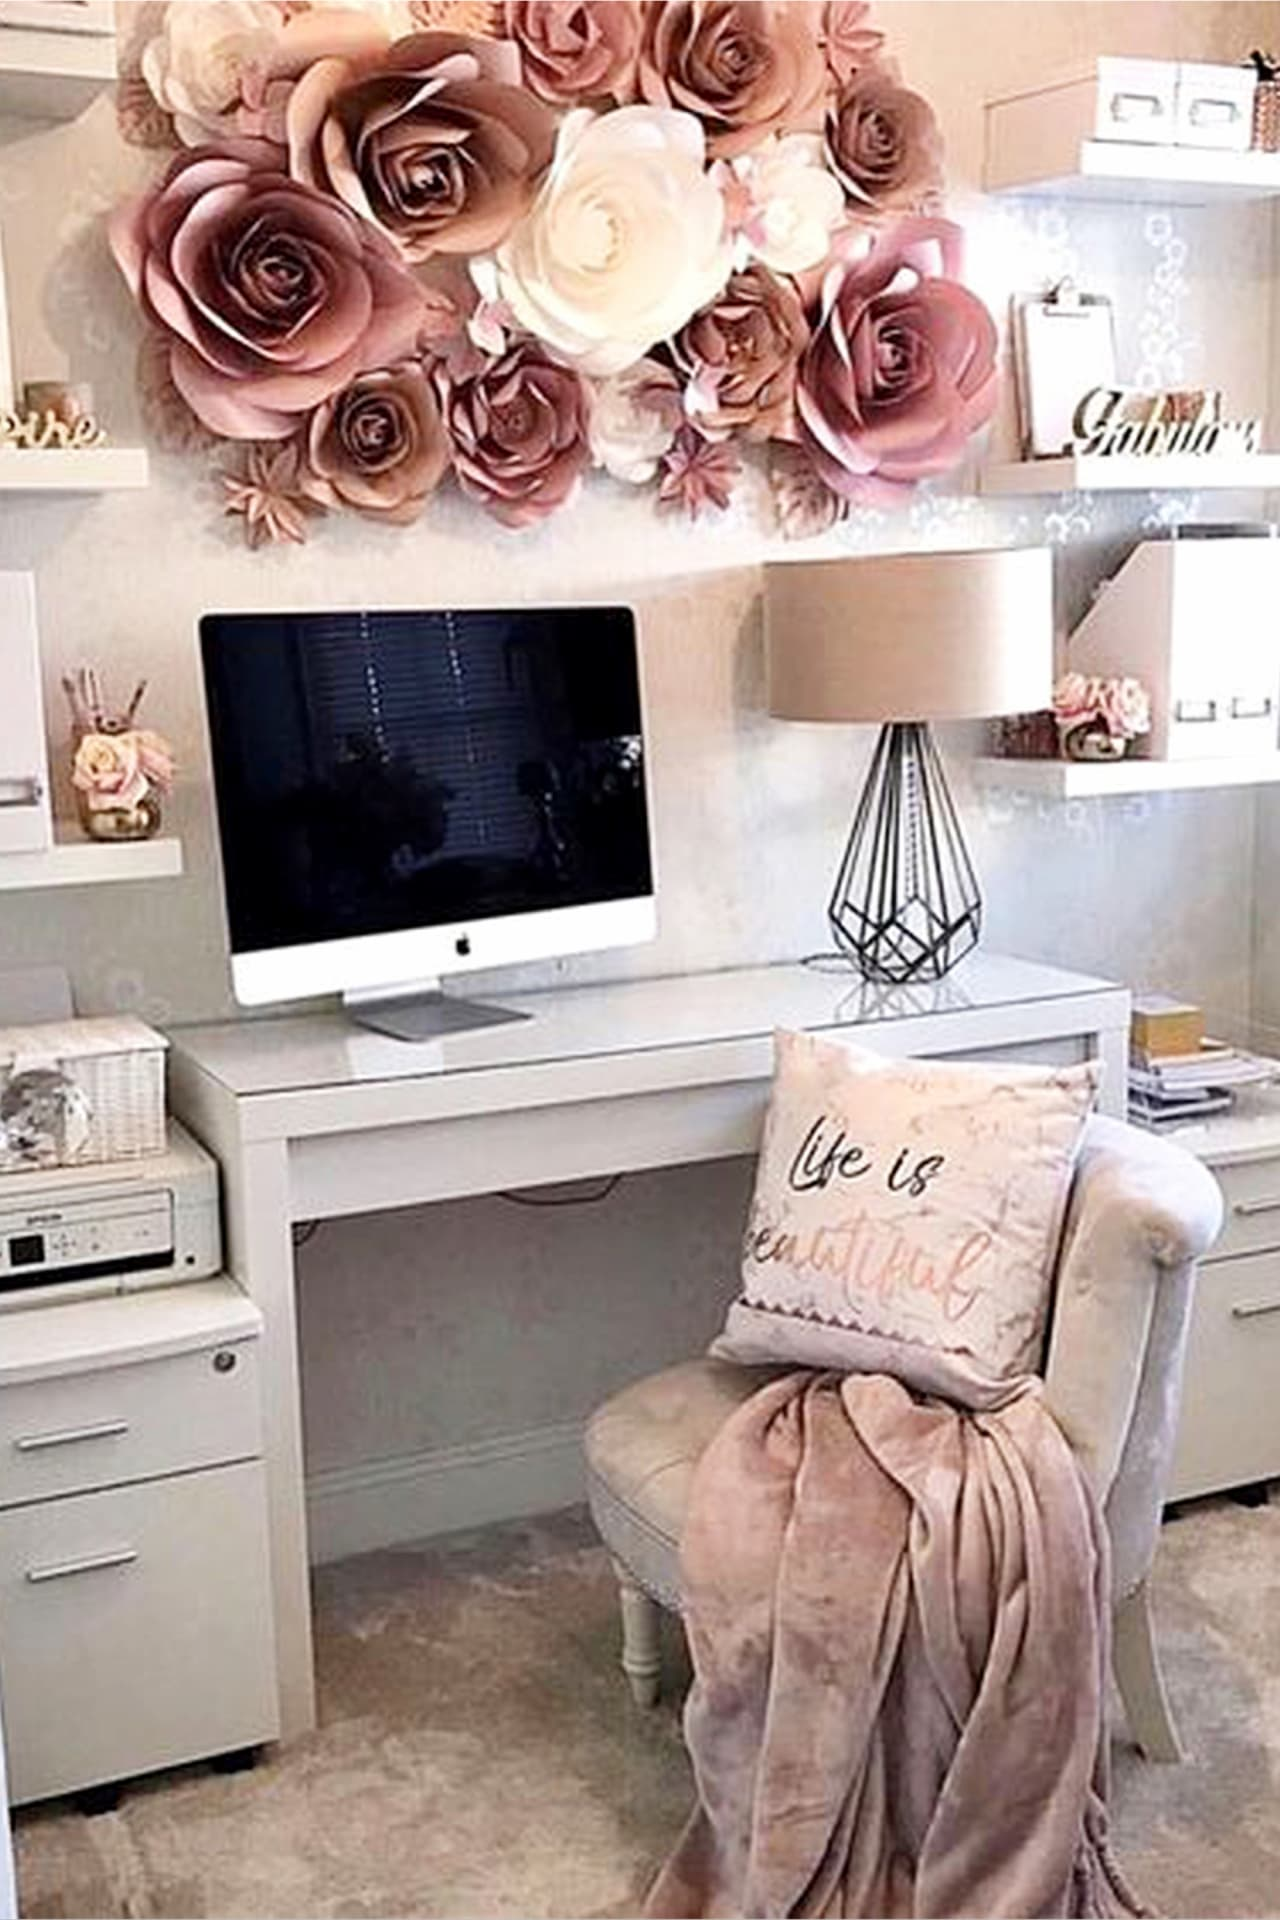 Pretty and feminine home office ideas for women and Girl Bosses!  Work from home?  You NEED a beautiful workspace to spark your creativity.  The rose gold /dusty rose home office decor accents are gorgeous!